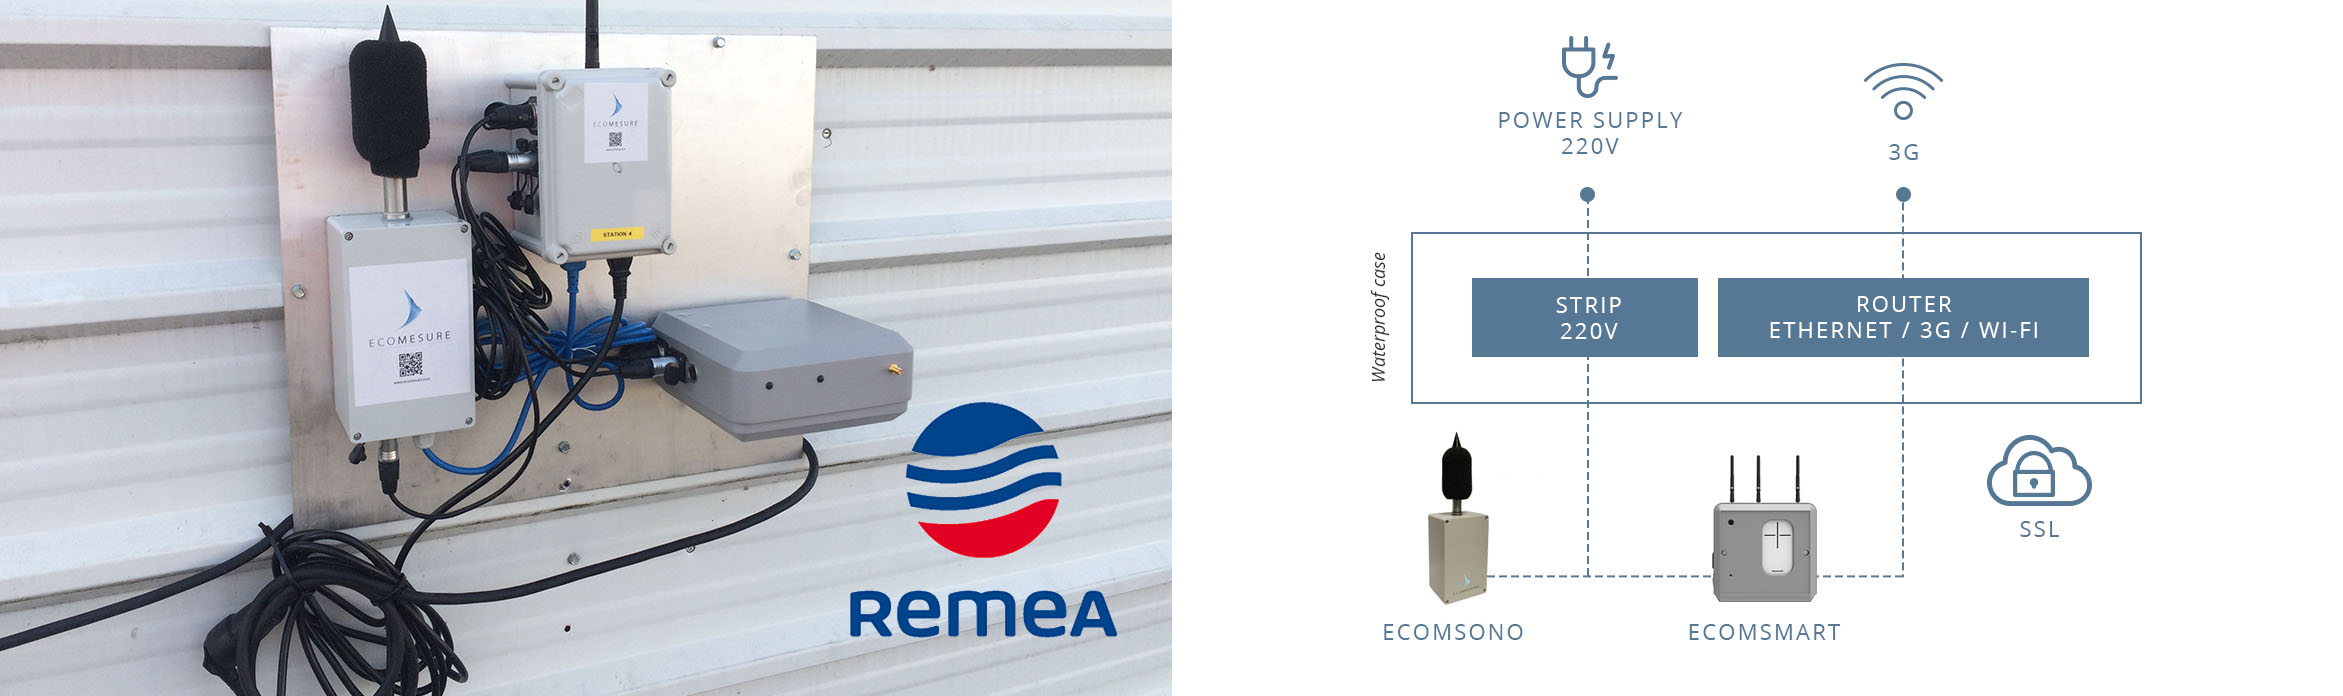 REMEA project